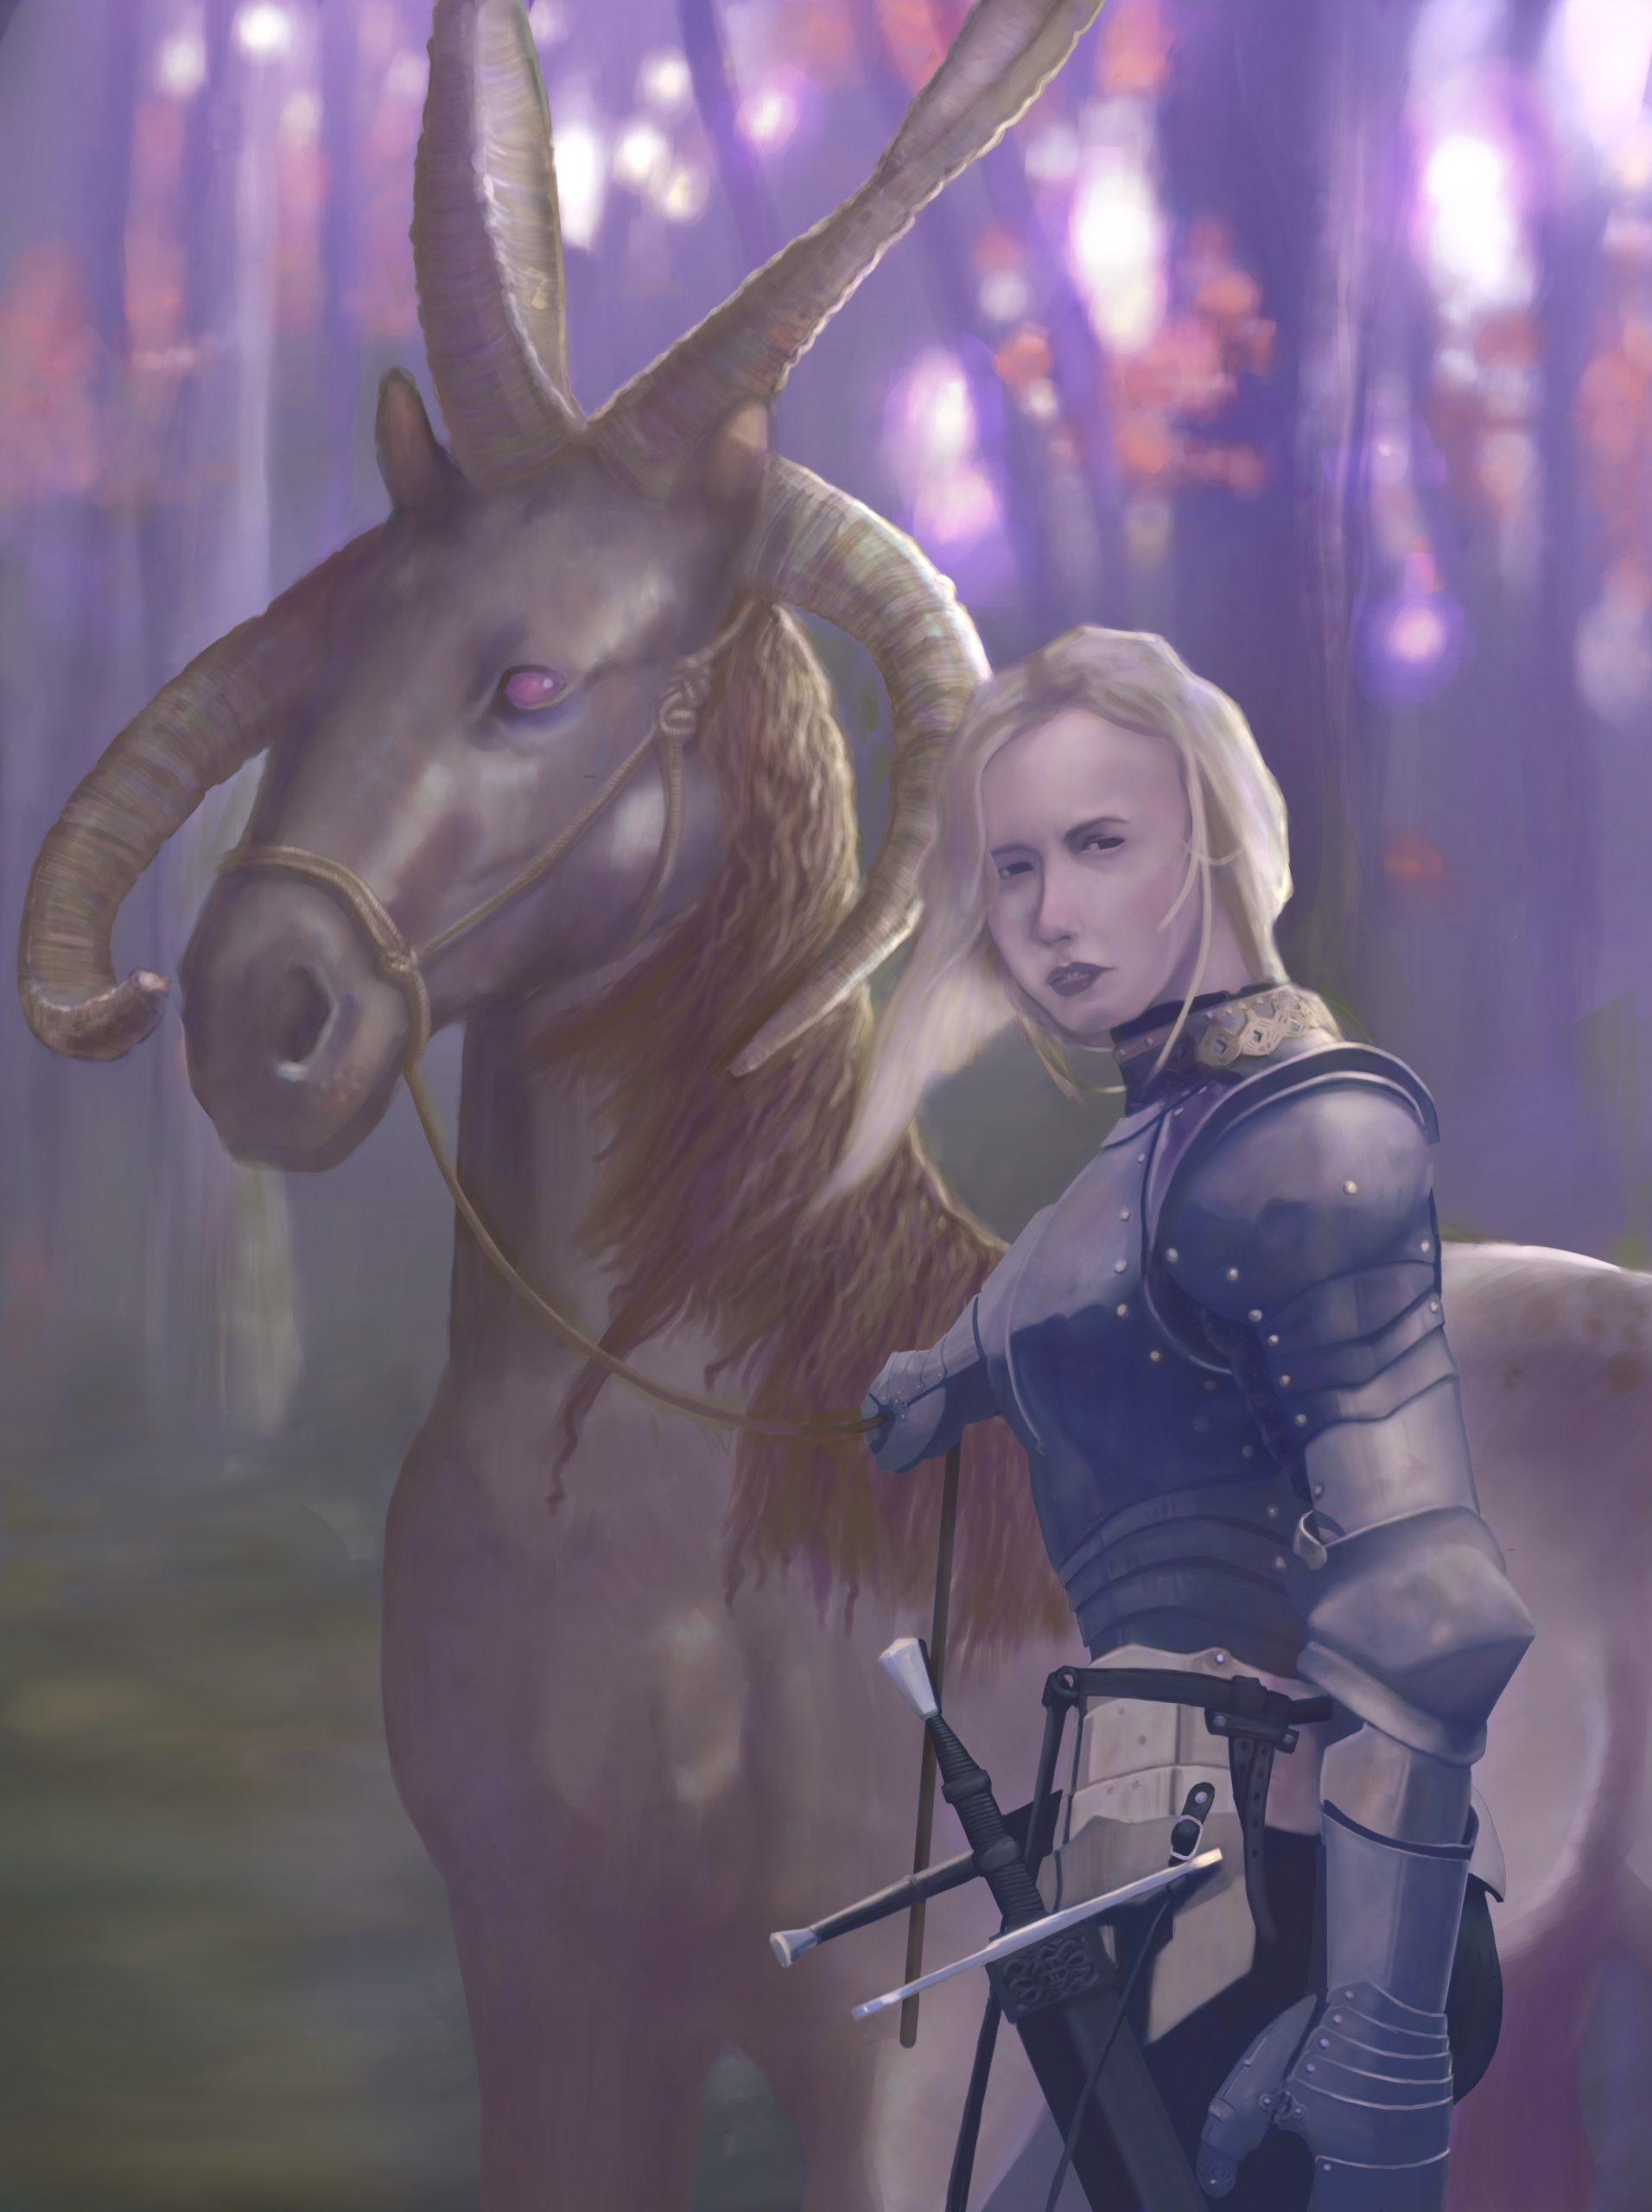 Knight and her Mount